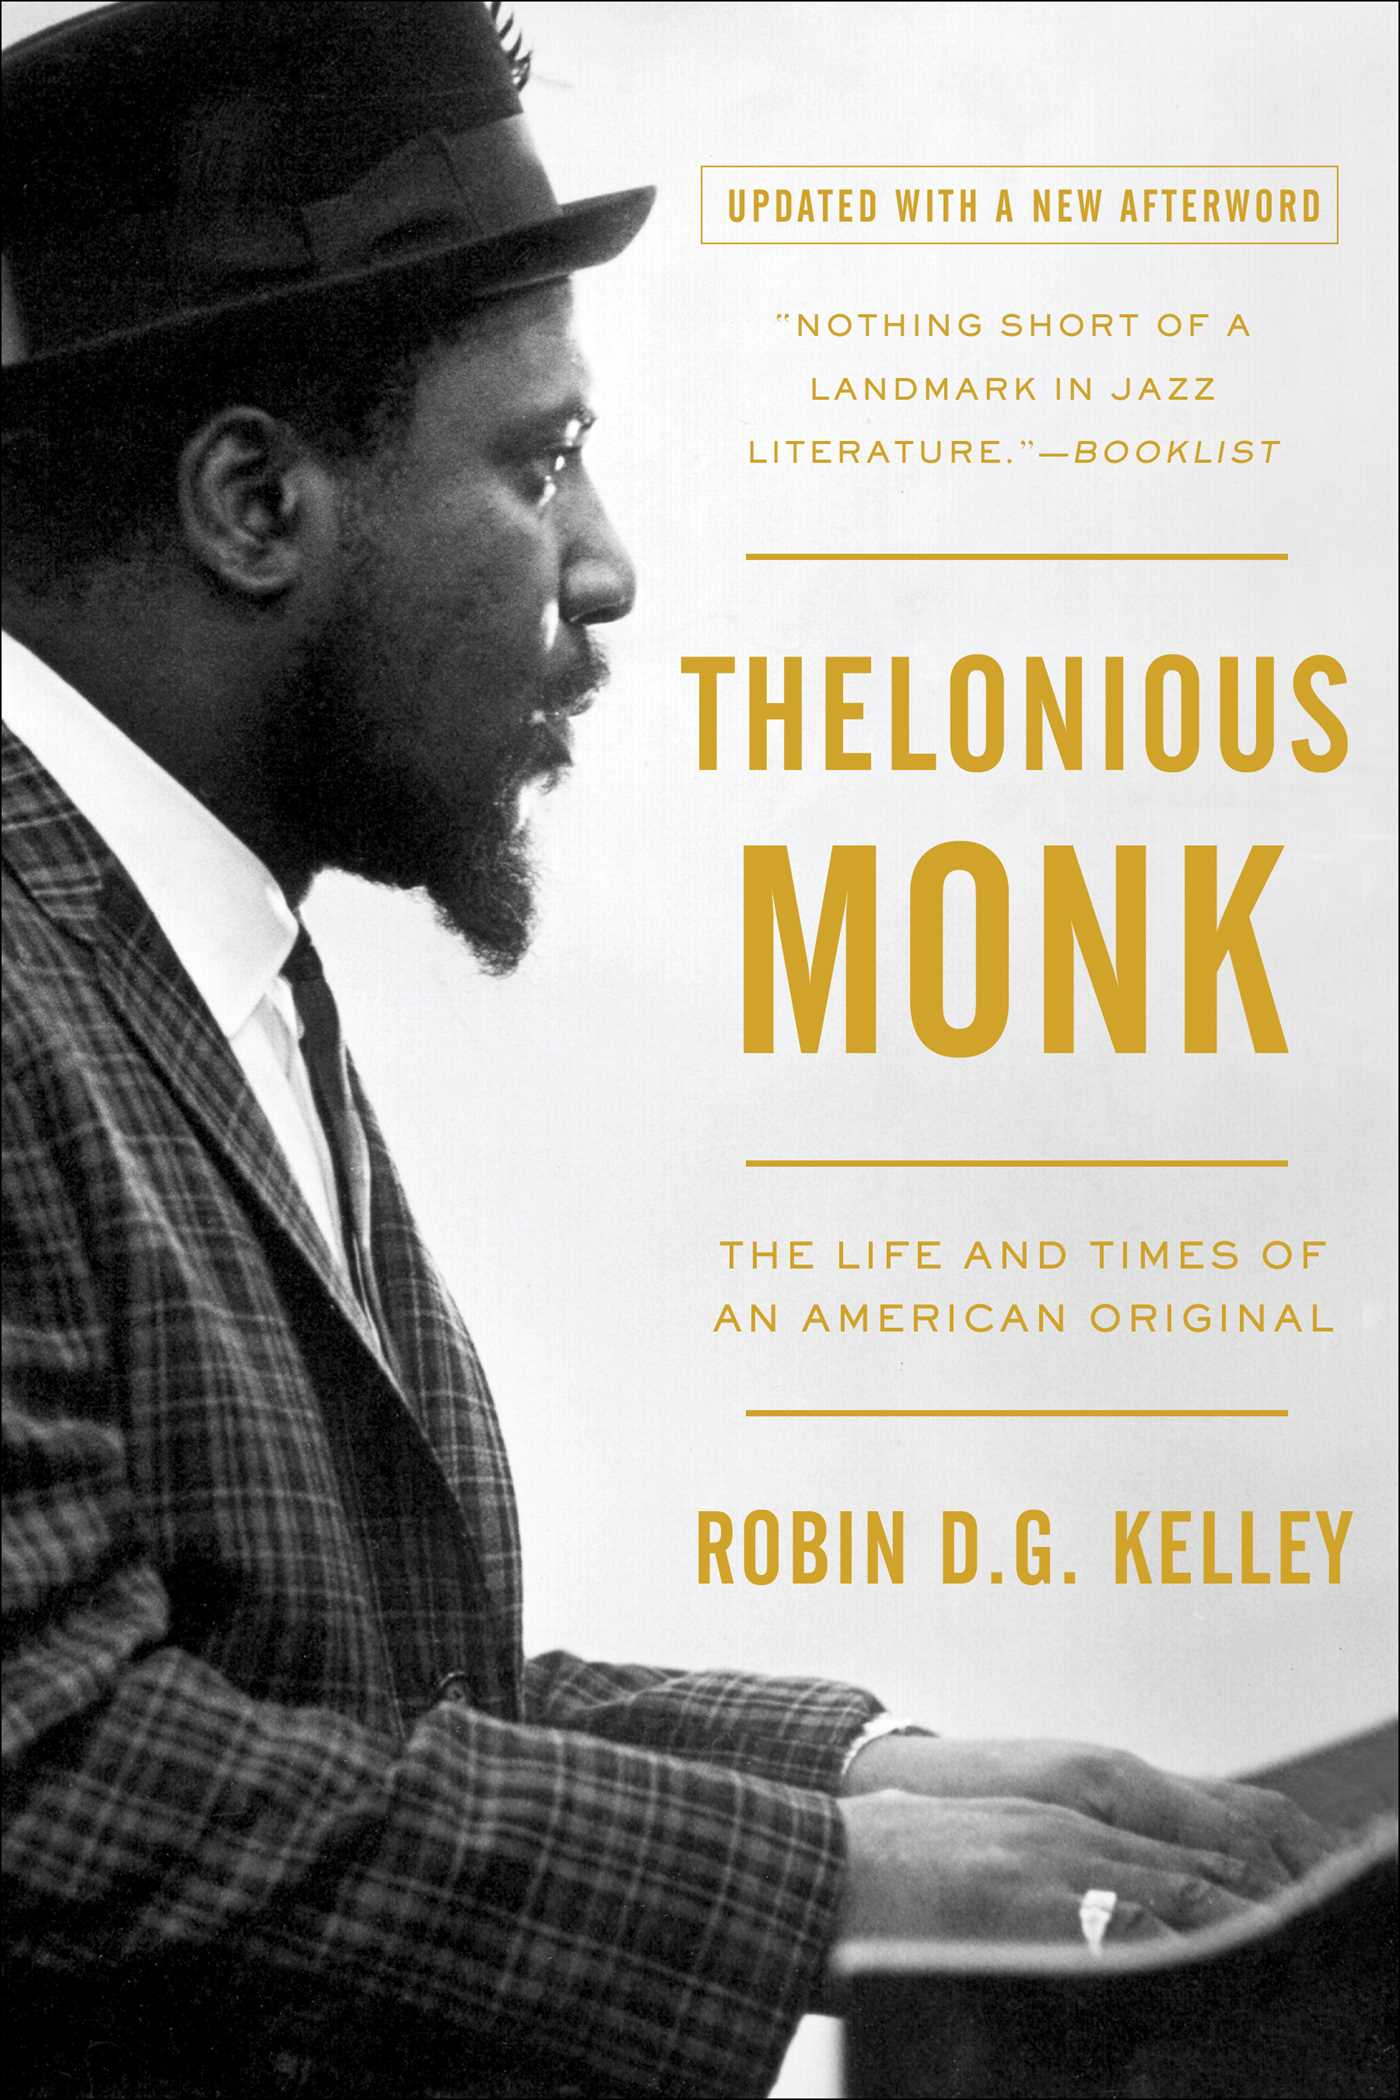 Thelonious monk 9781439190494 hr